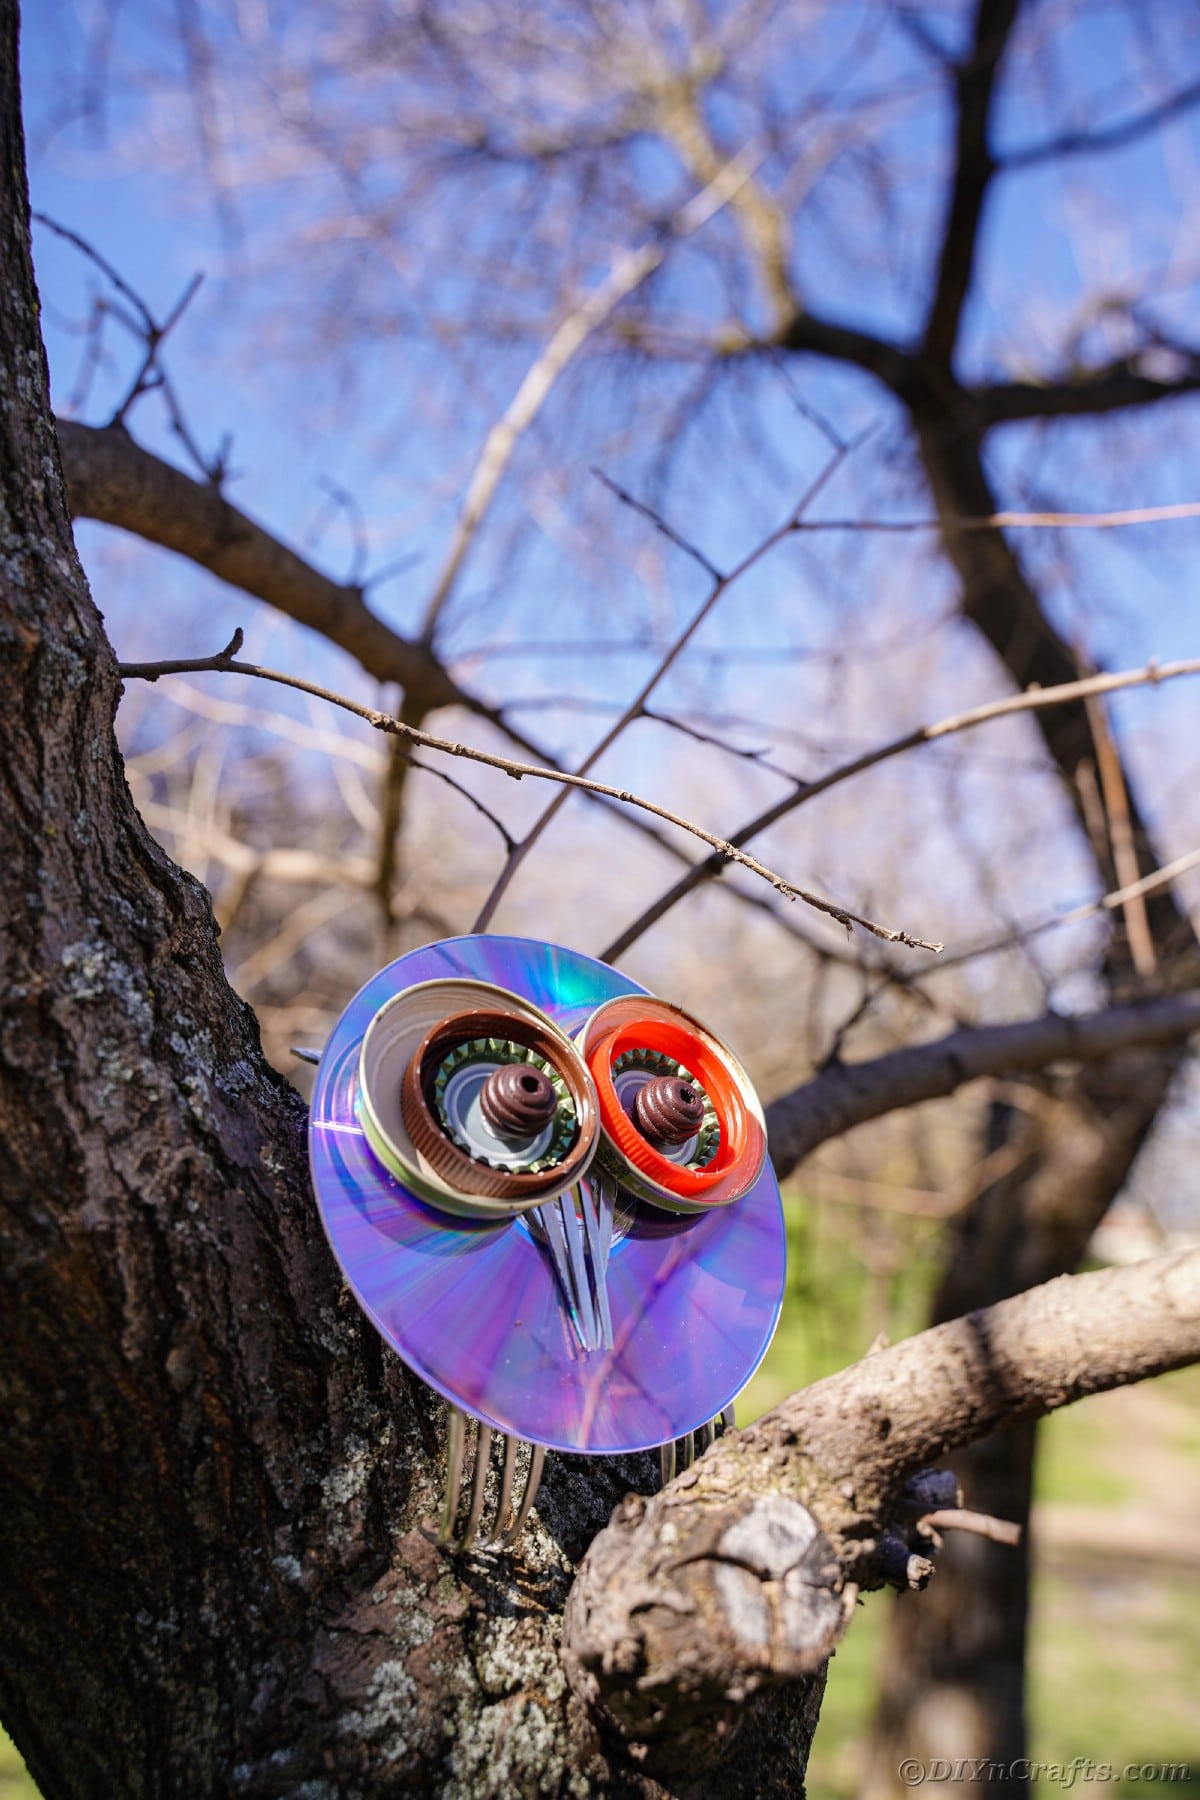 Owl made from upcycled items in tree